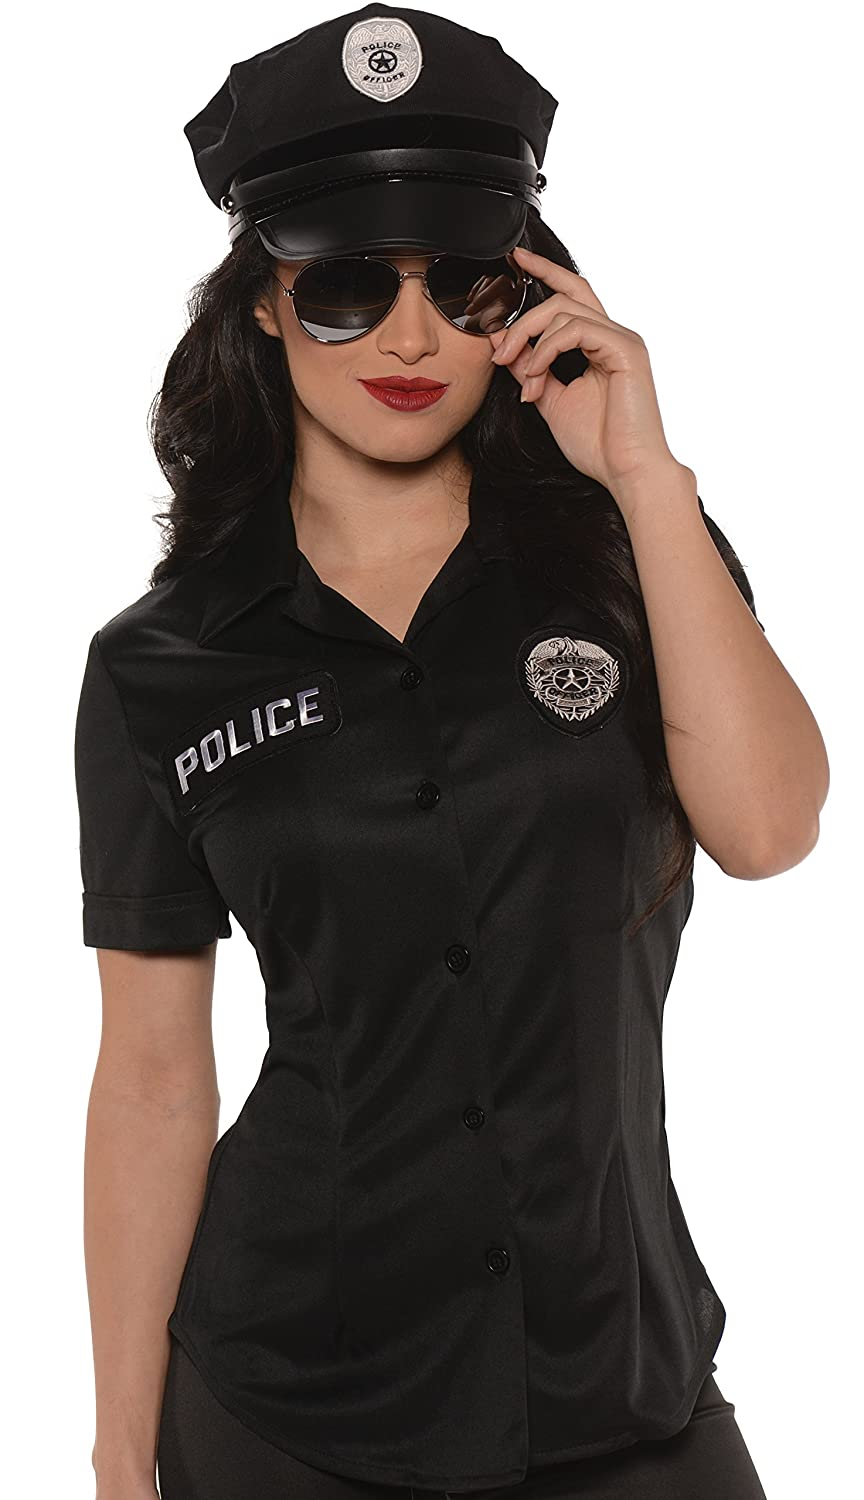 Underwraps Women's Police Fitted Shirt Underwraps Child code